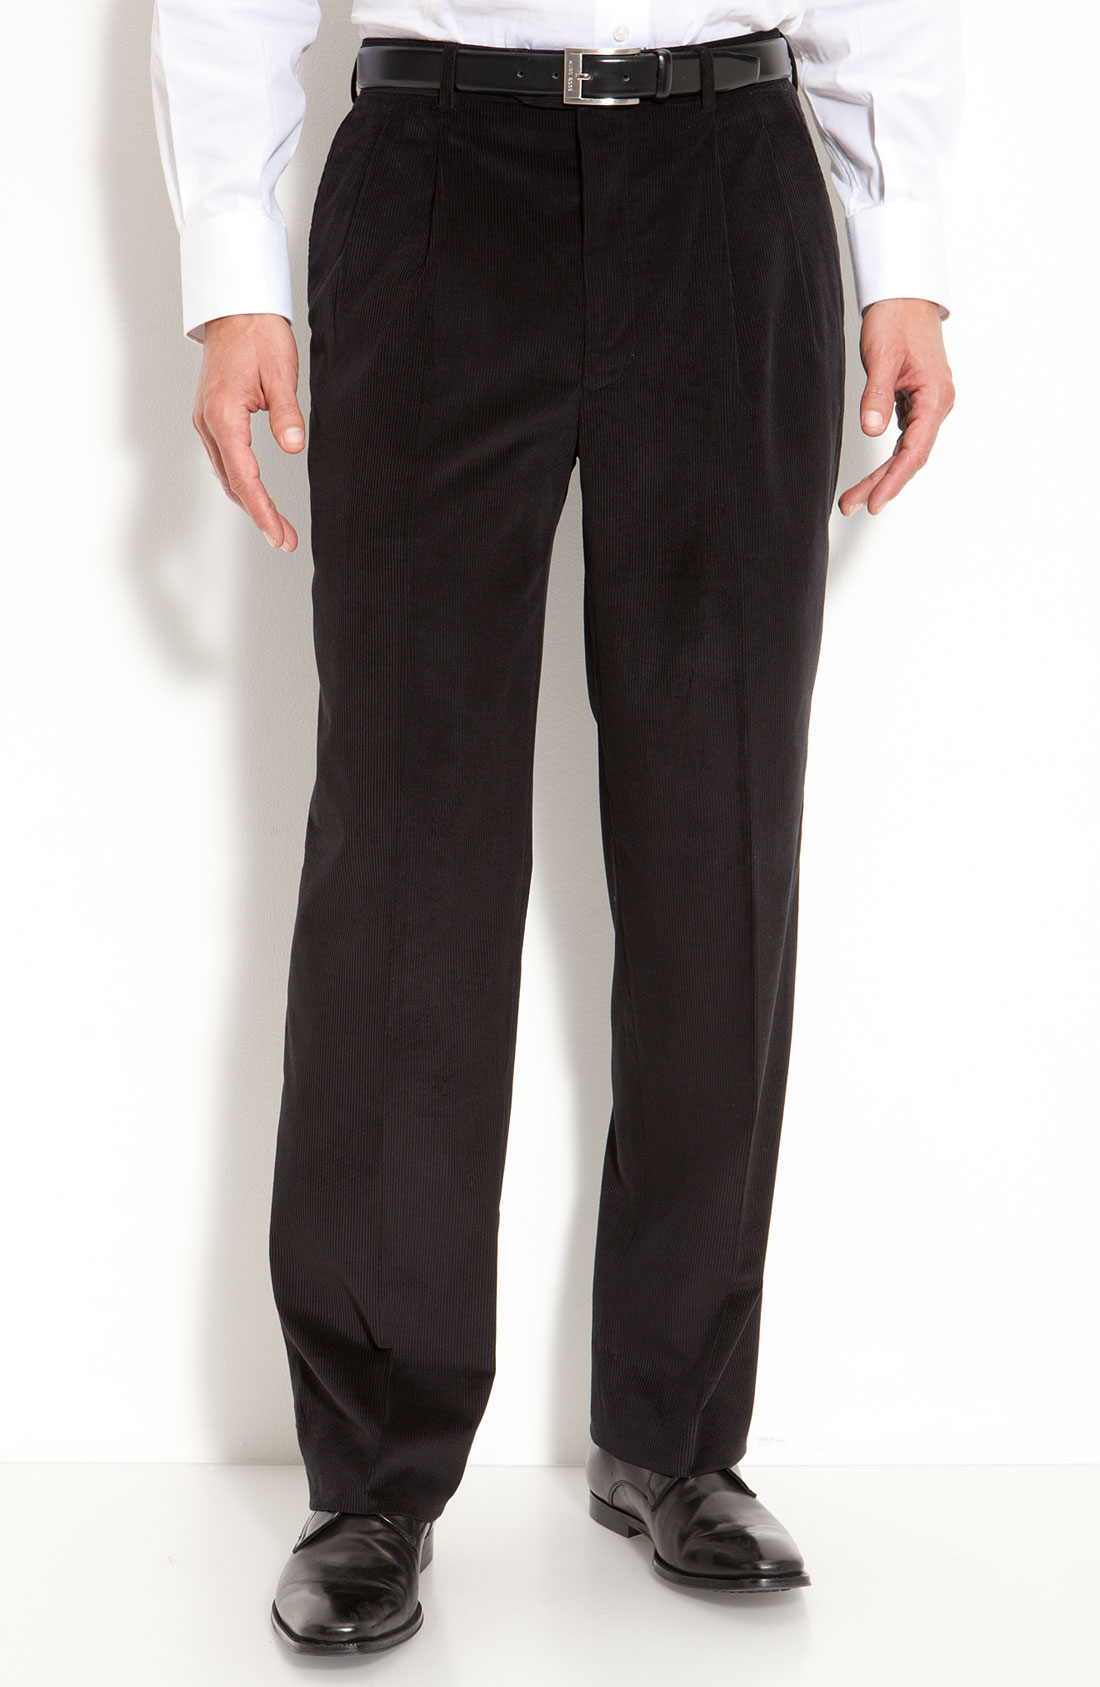 Find great deals on eBay for mens black corduroy pants. Shop with confidence.